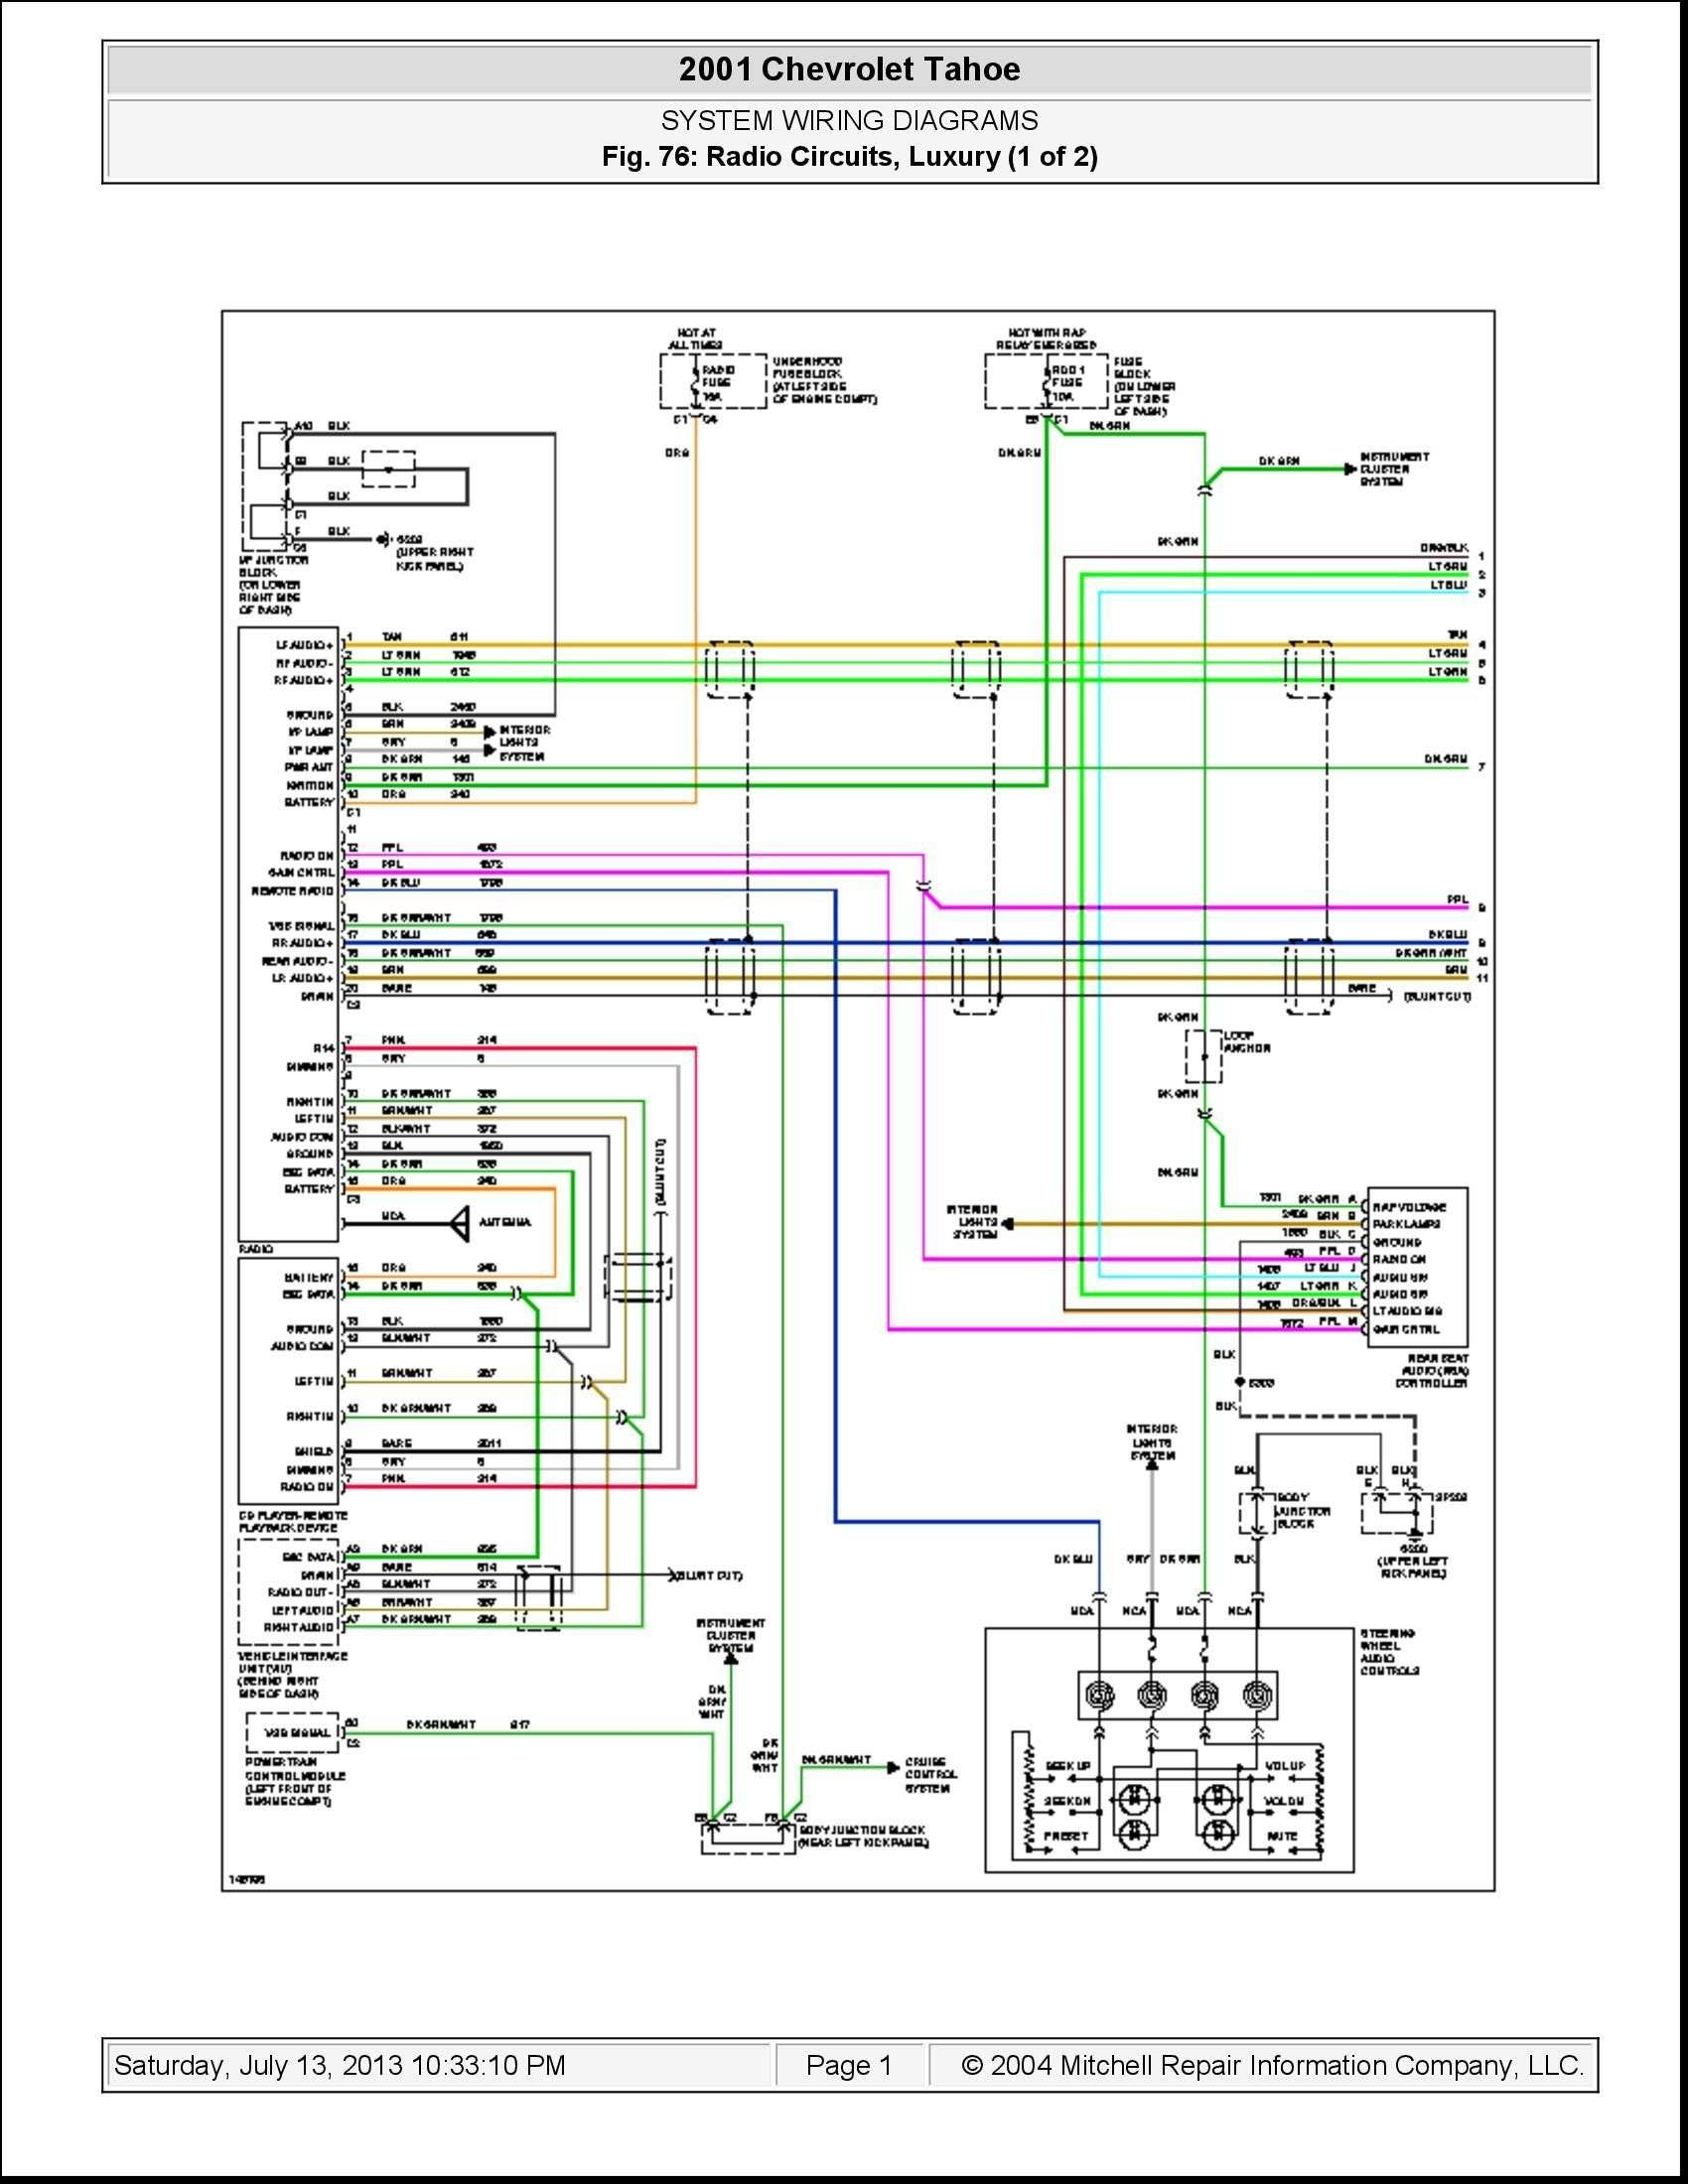 wiring harness 2005 tahoe car wiring diagrams explained u2022 rh ethermag co 2000 Chevy Silverado 1500 Truck Wiring Diagrams 2004 Chevy Silverado Wiring Diagram